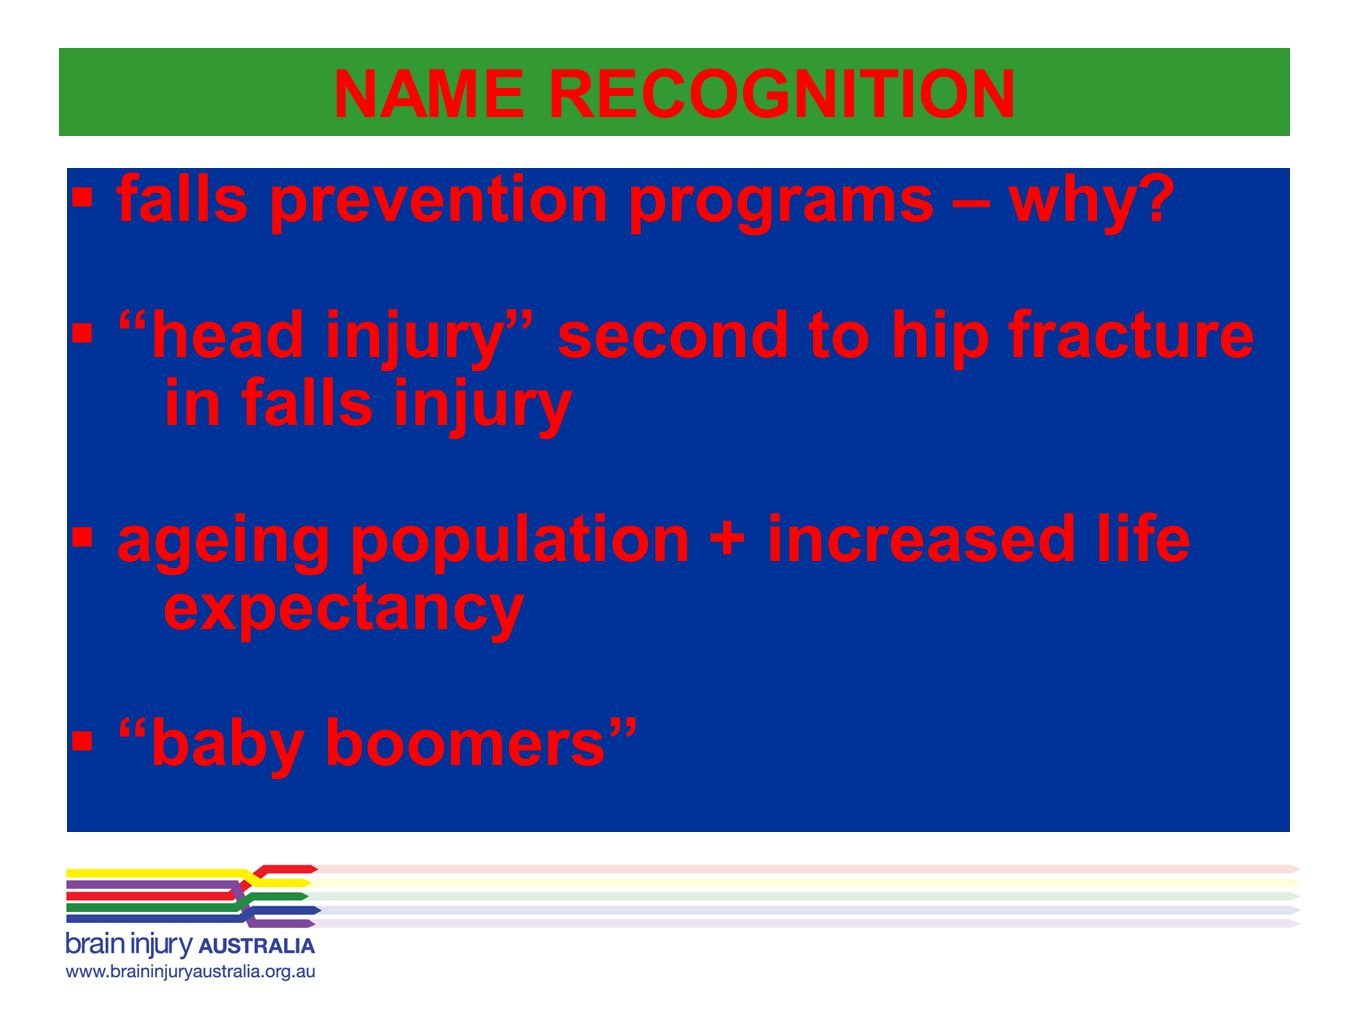 falls prevention programs – why